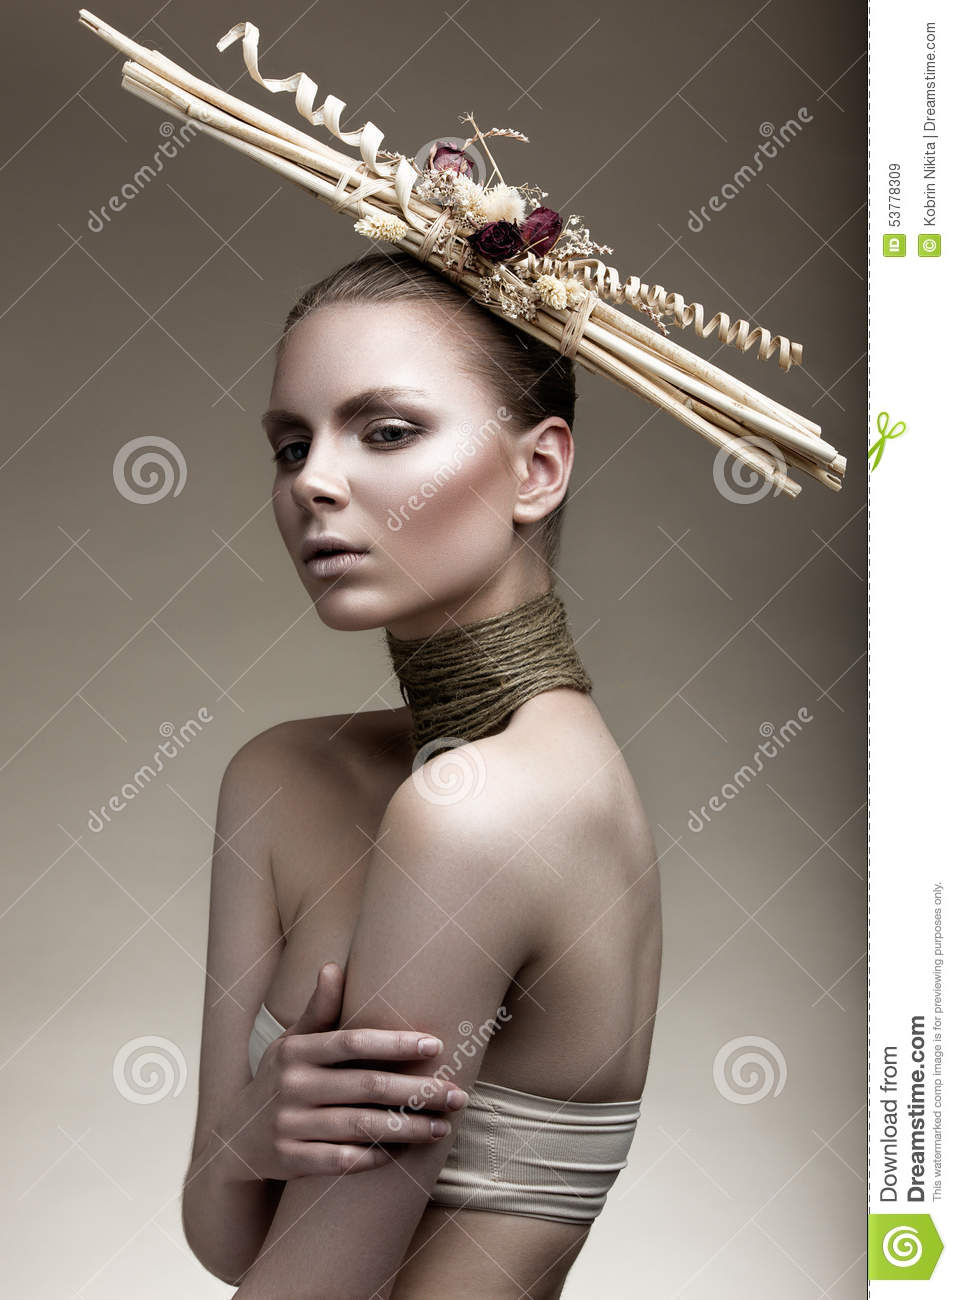 Forum on this topic: Beauty and the Real Girl: A Bronze , beauty-and-the-real-girl-a-bronze/